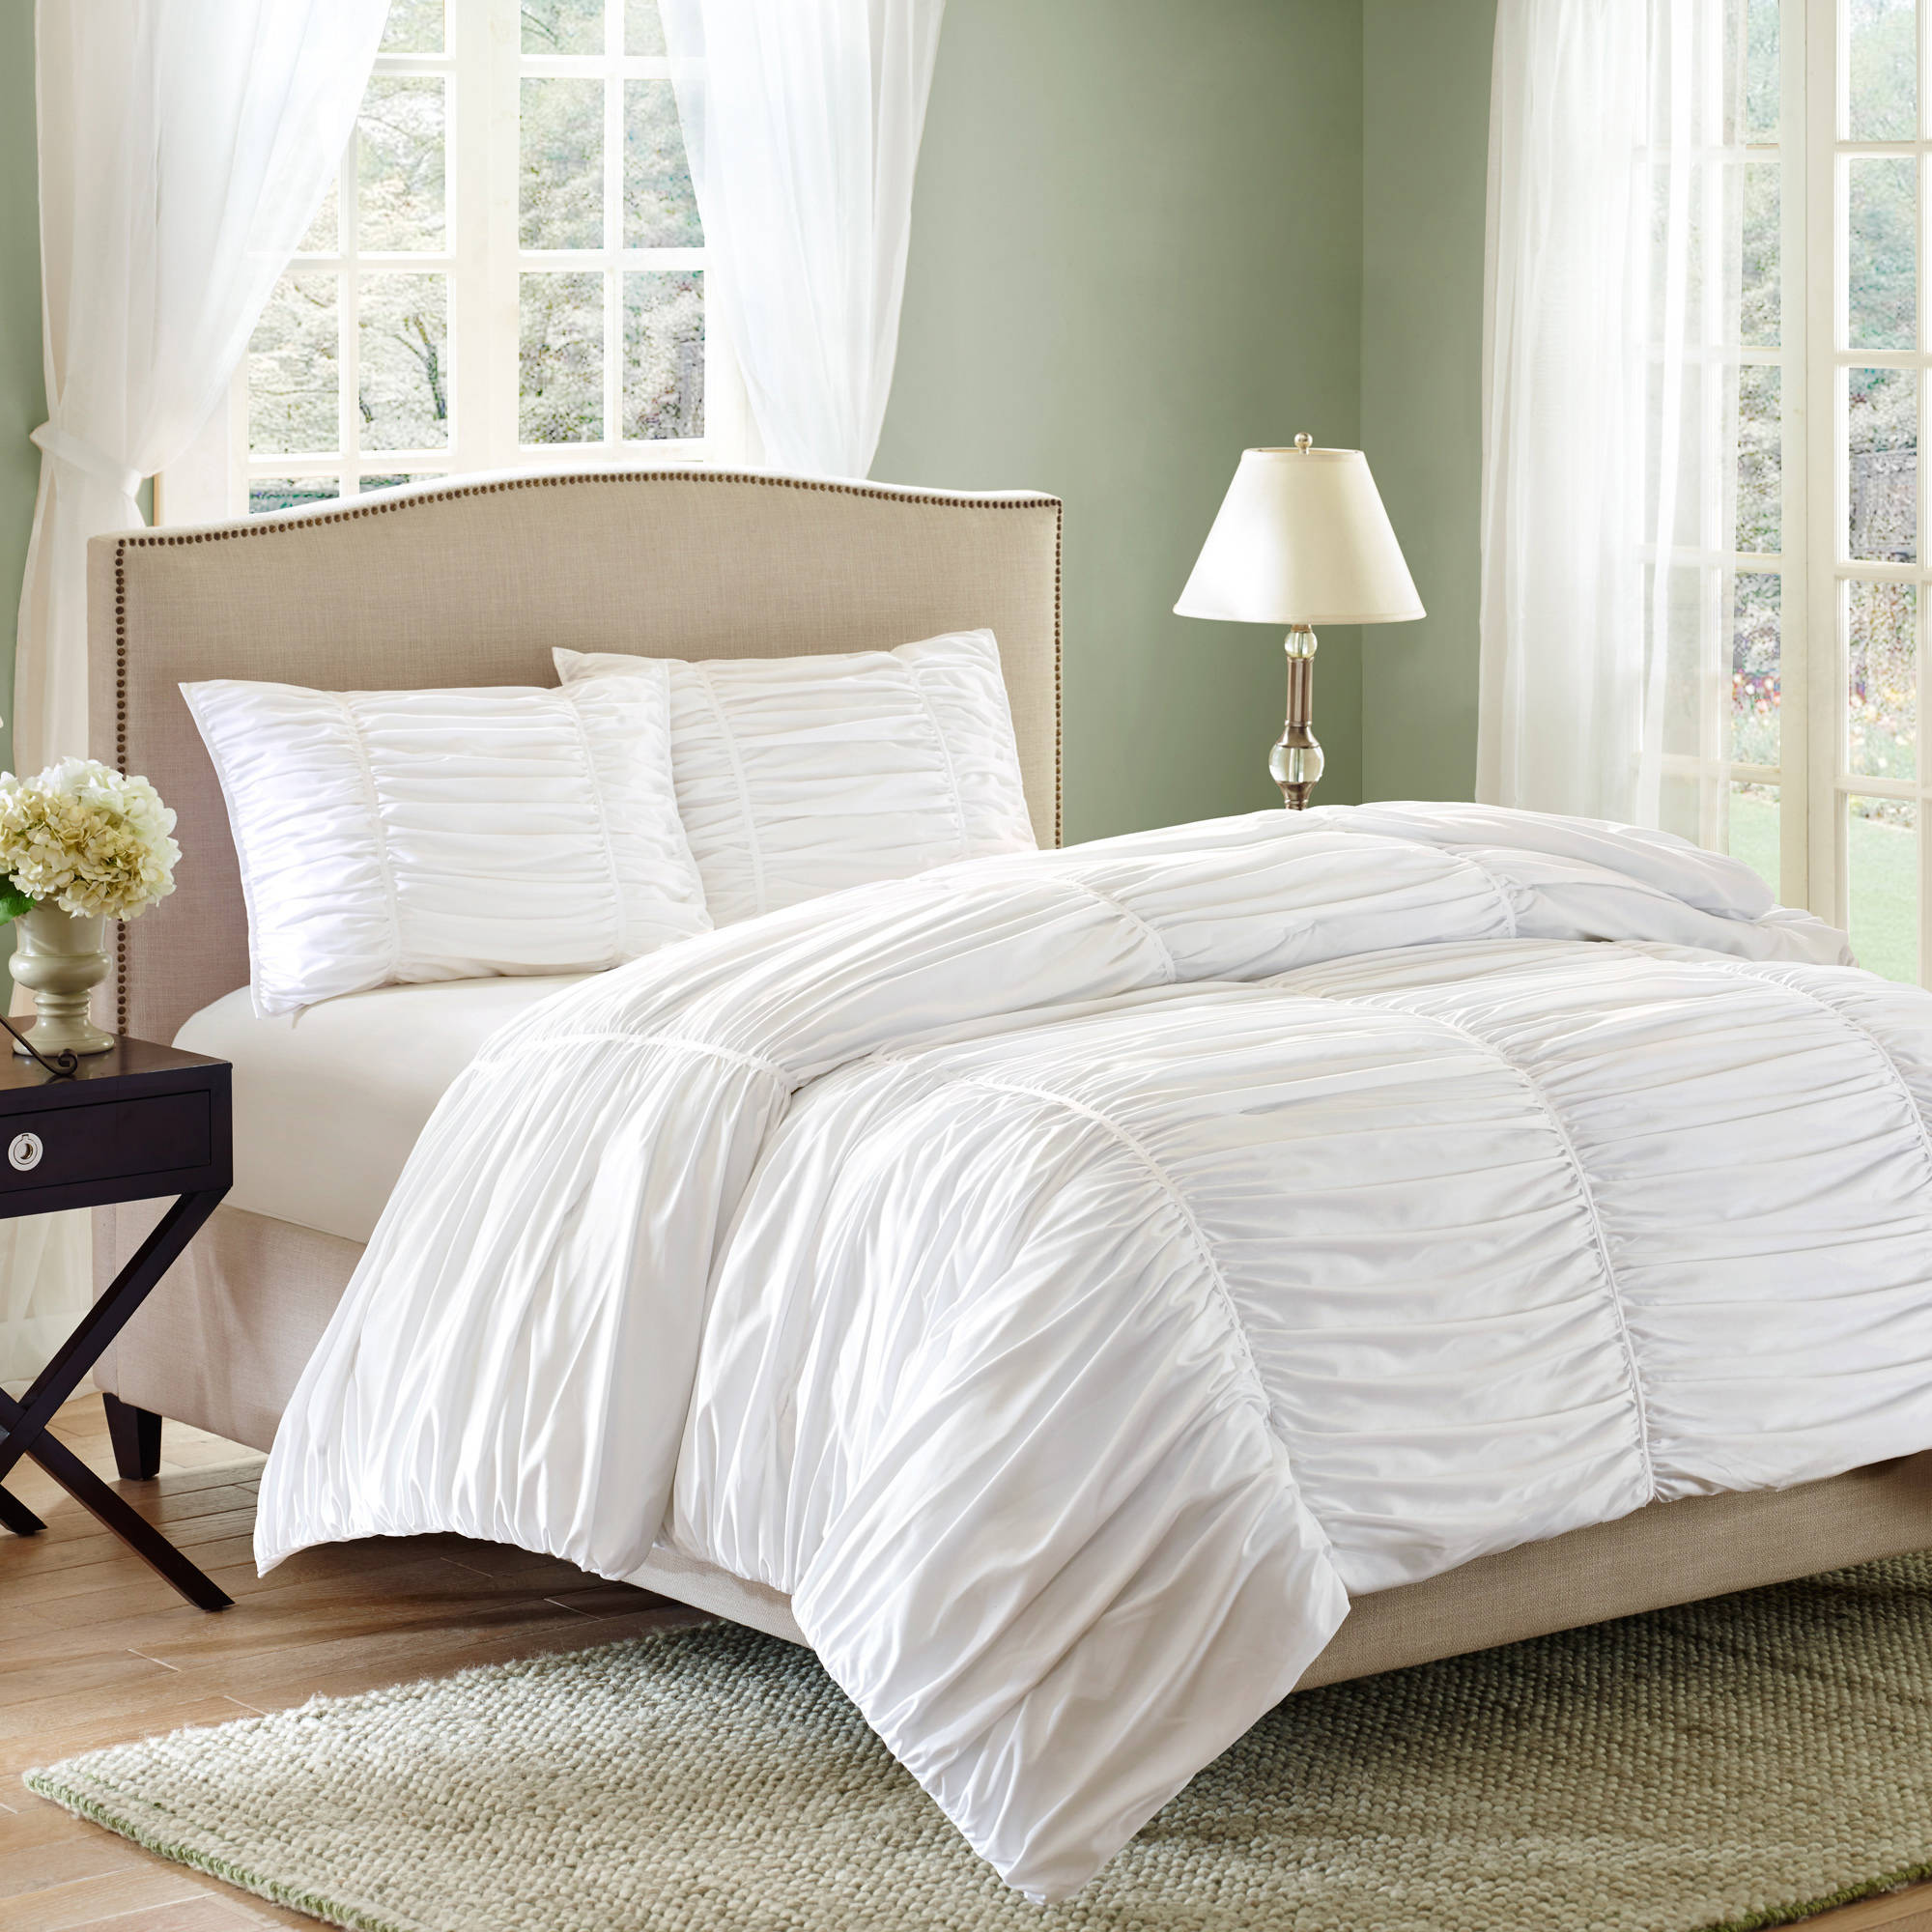 Better Homes and Gardens Ruching 3Piece Comforter Set Walmartcom